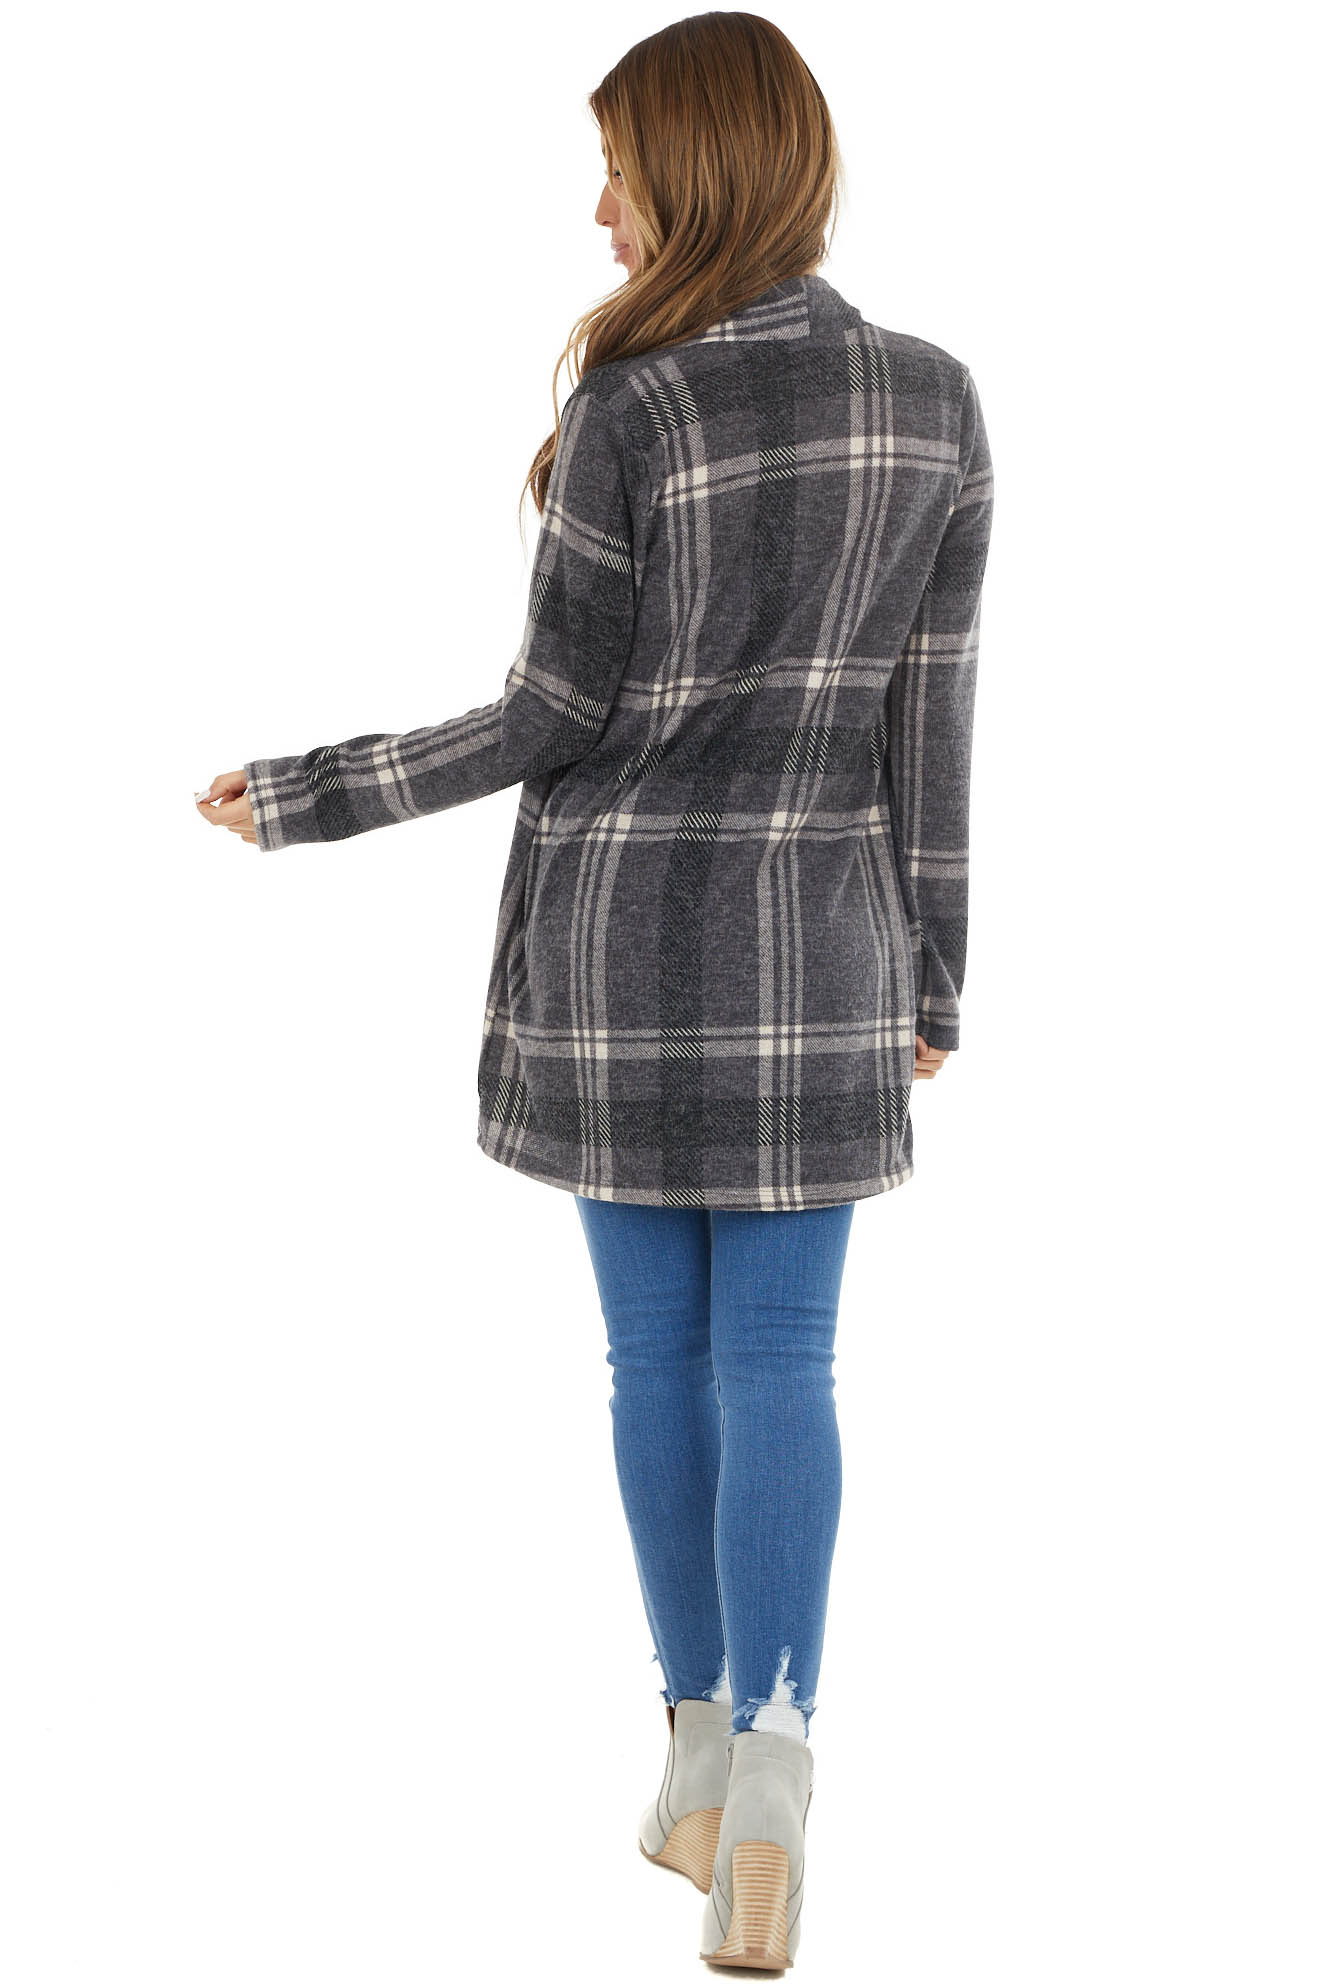 Charcoal Grey Plaid Open Front Long Sleeve Cardigan